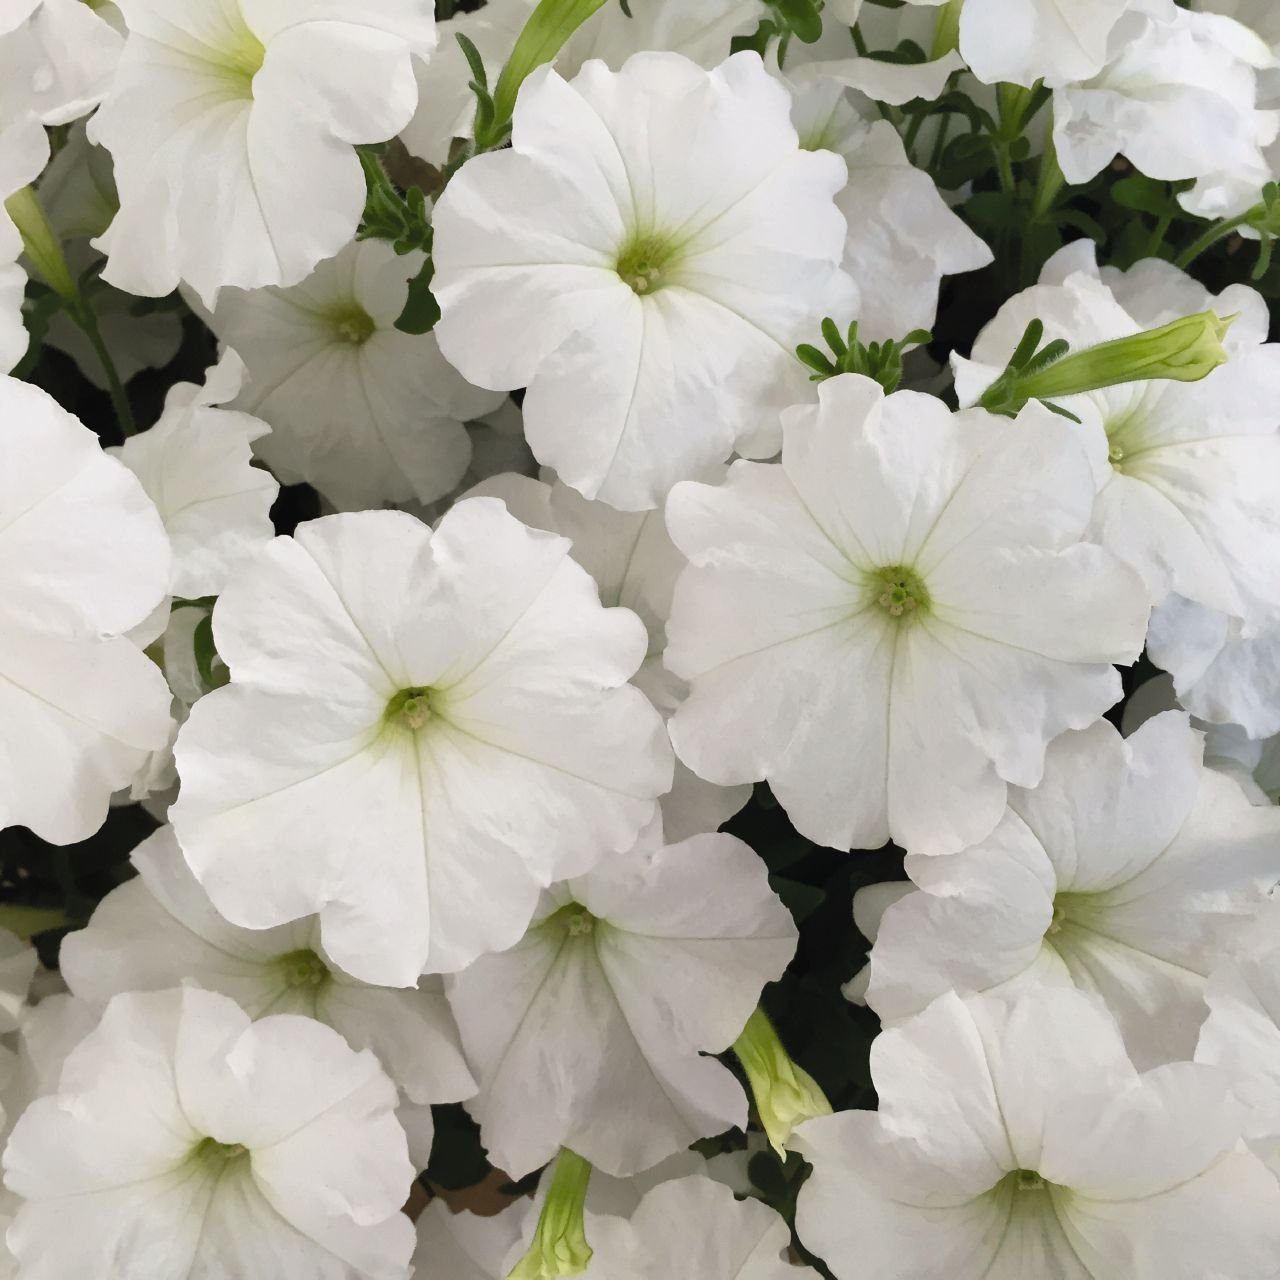 Amazon 100 Pelleted Seeds Trilogy White Pelleted Petunia Flower